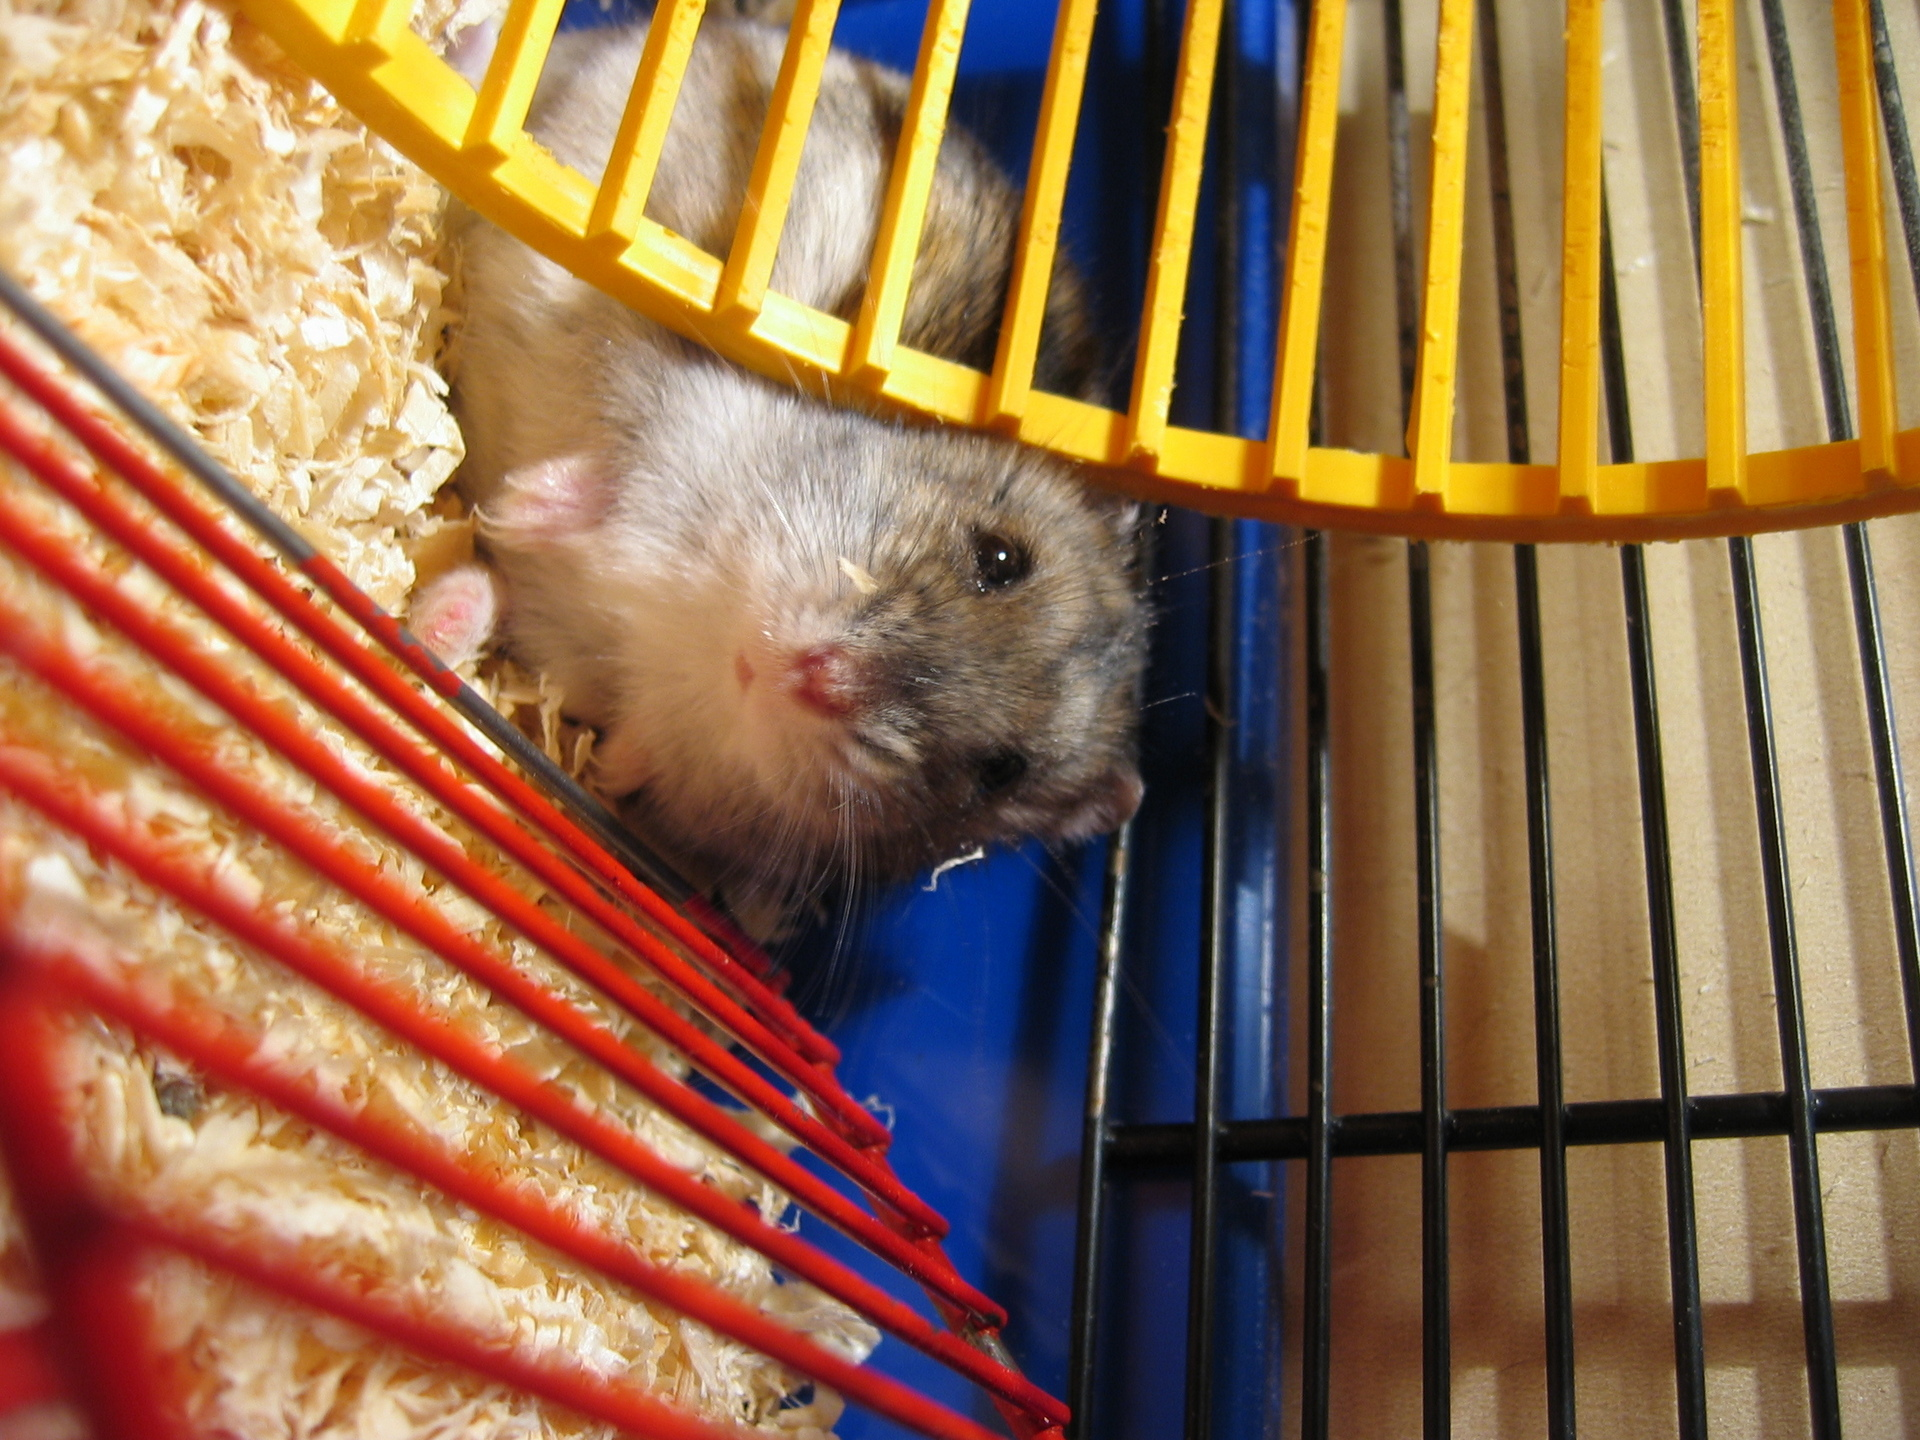 My Hamster Batman